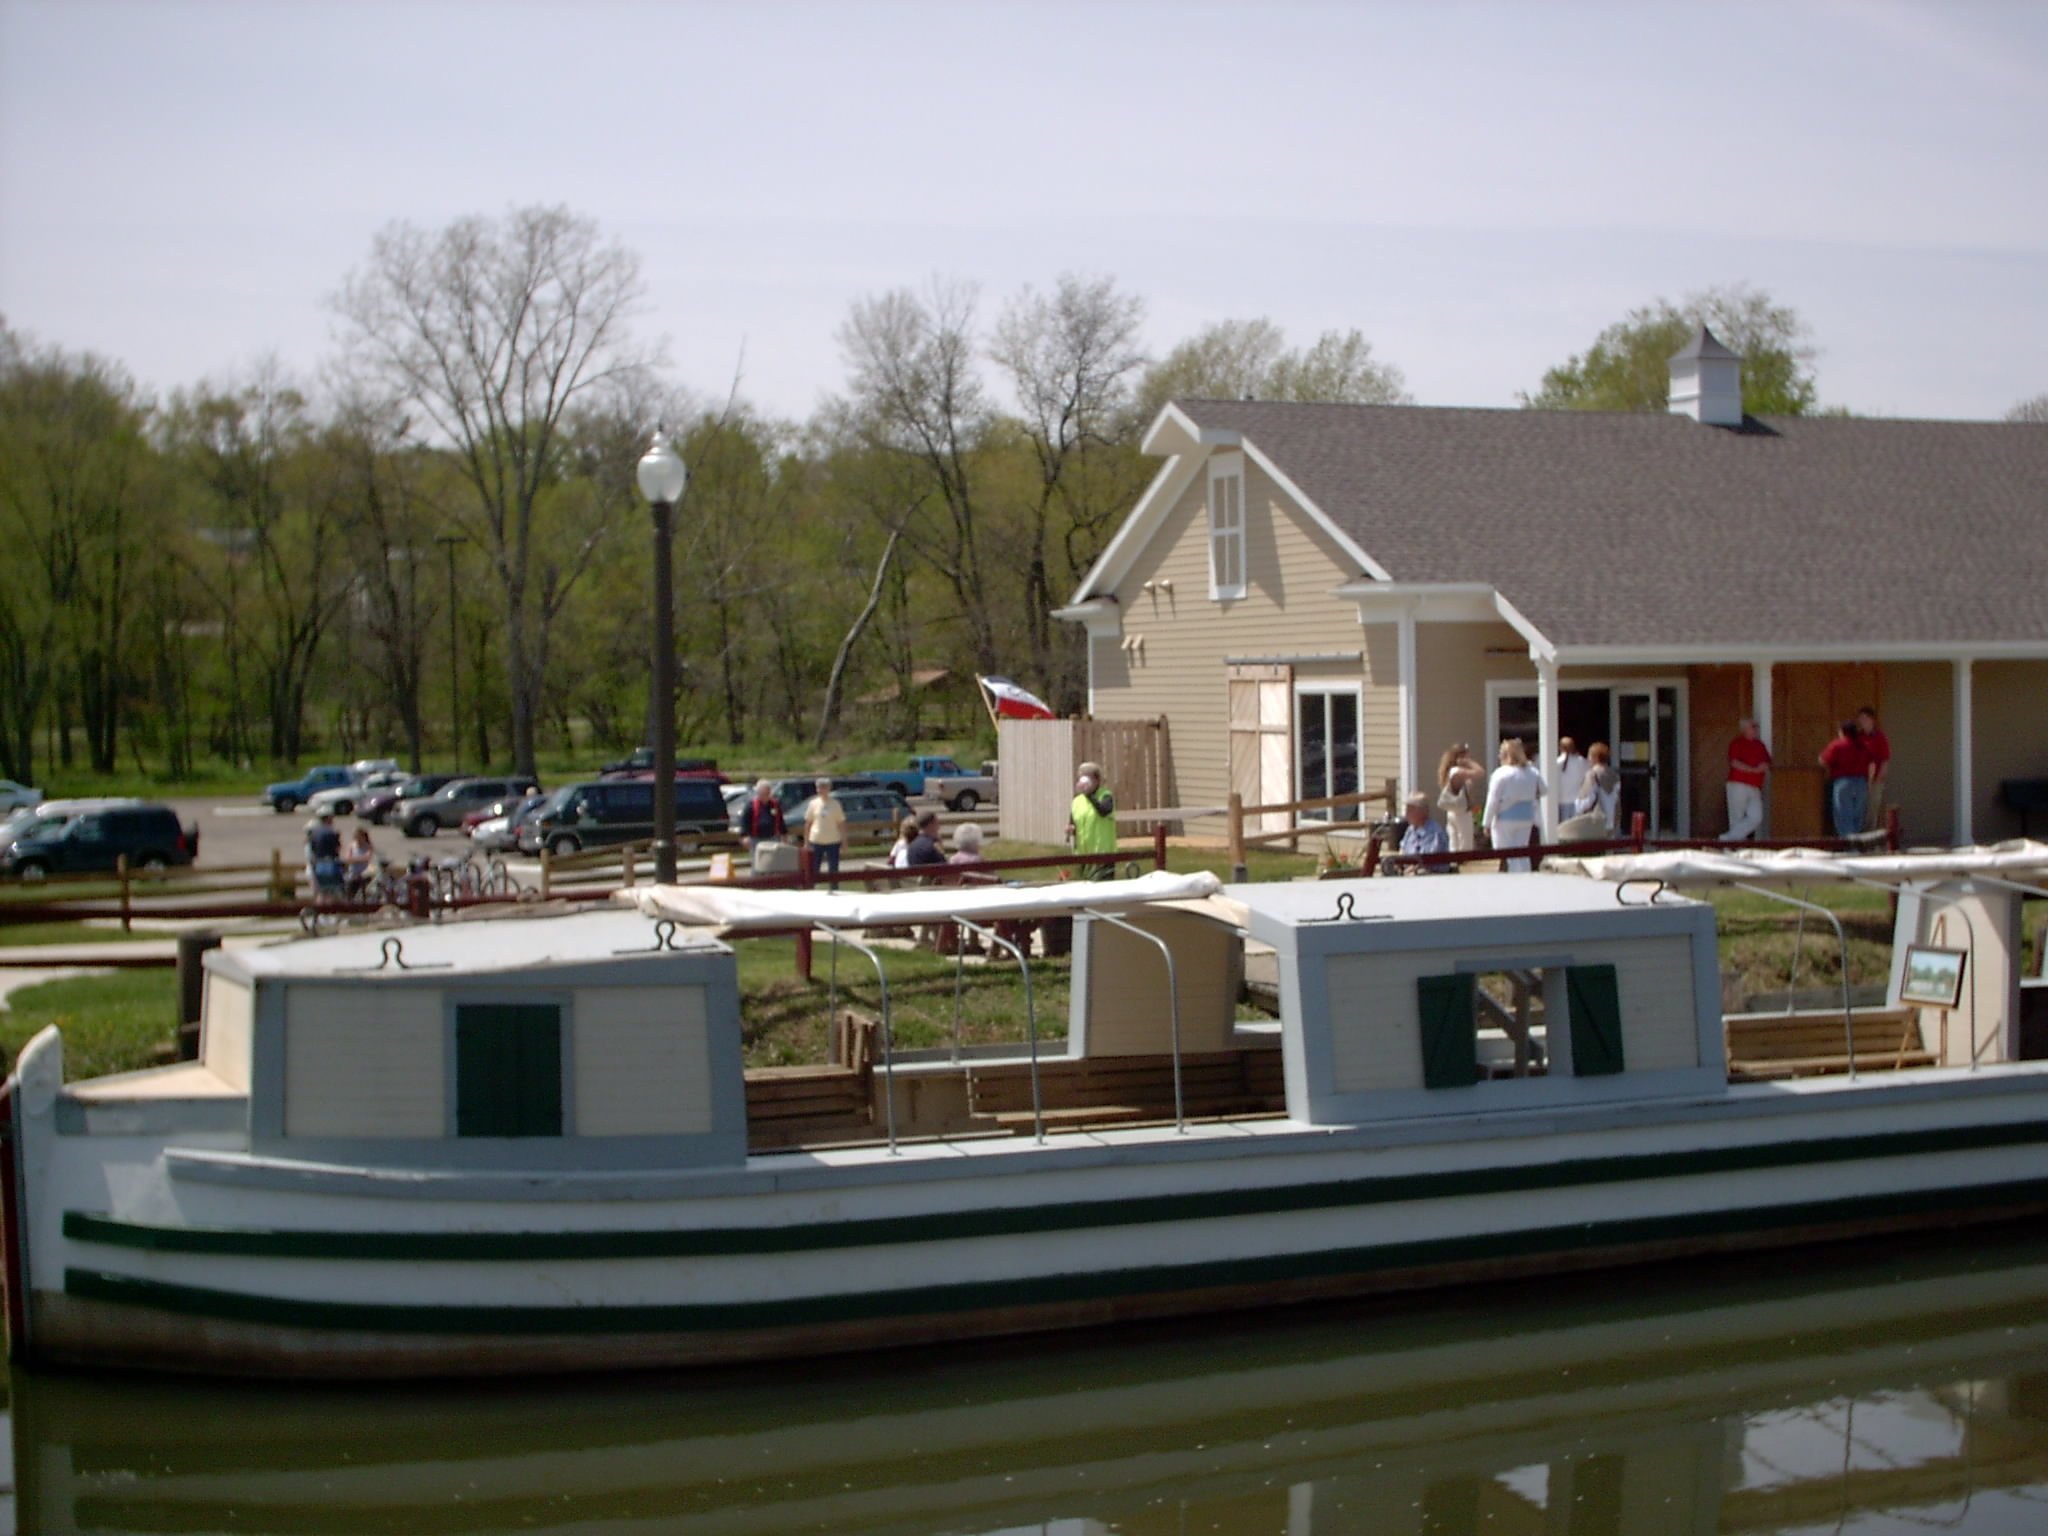 St. Helena III Docked at Canalway Center